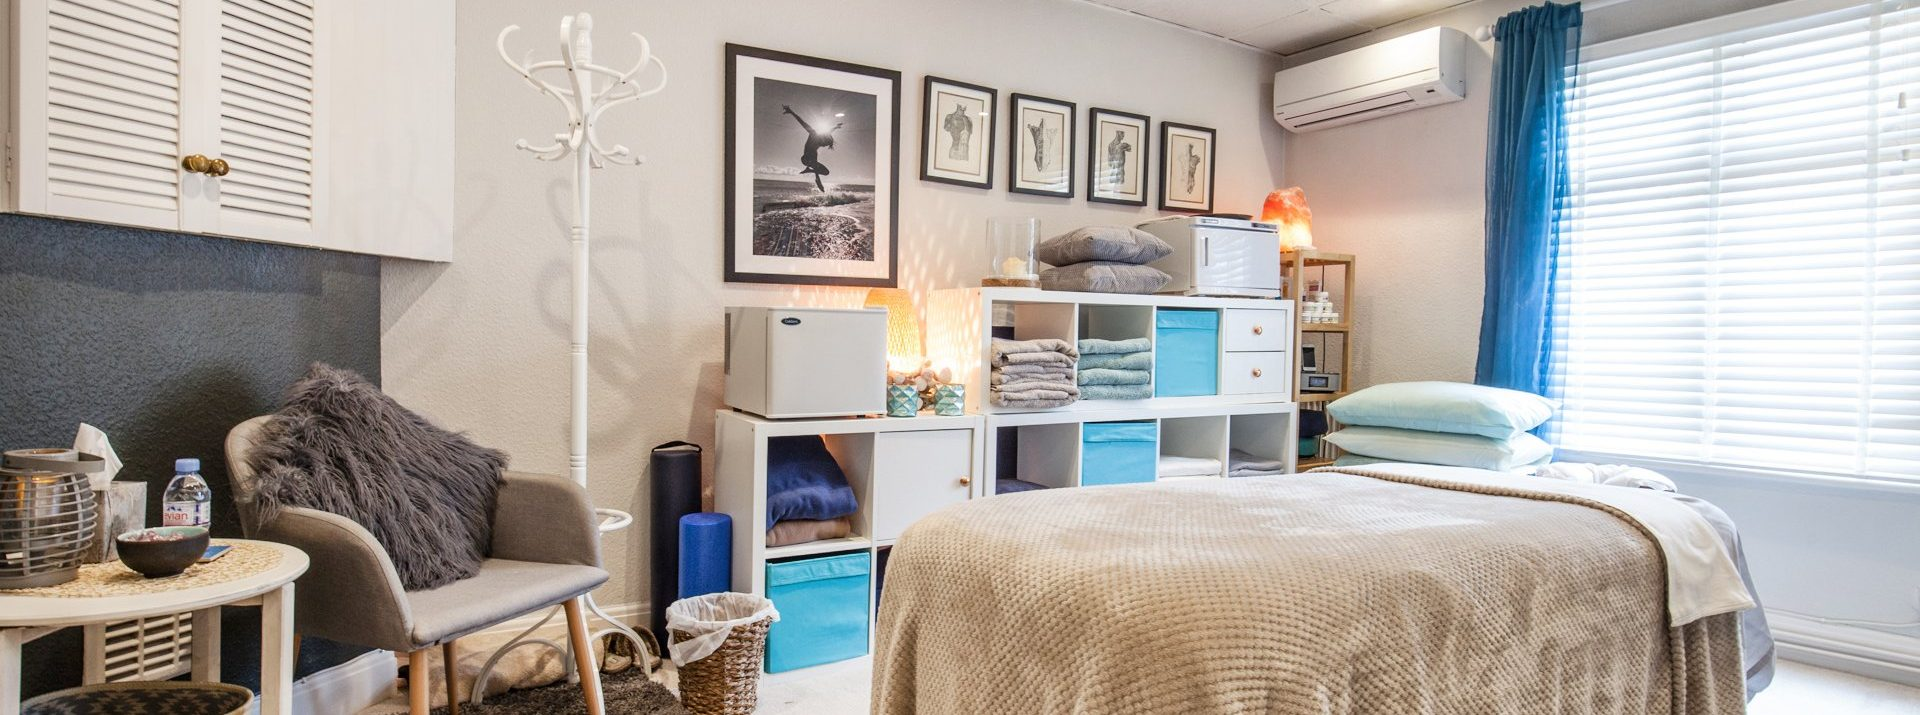 Cosy & Welcoming Treatment Rooms